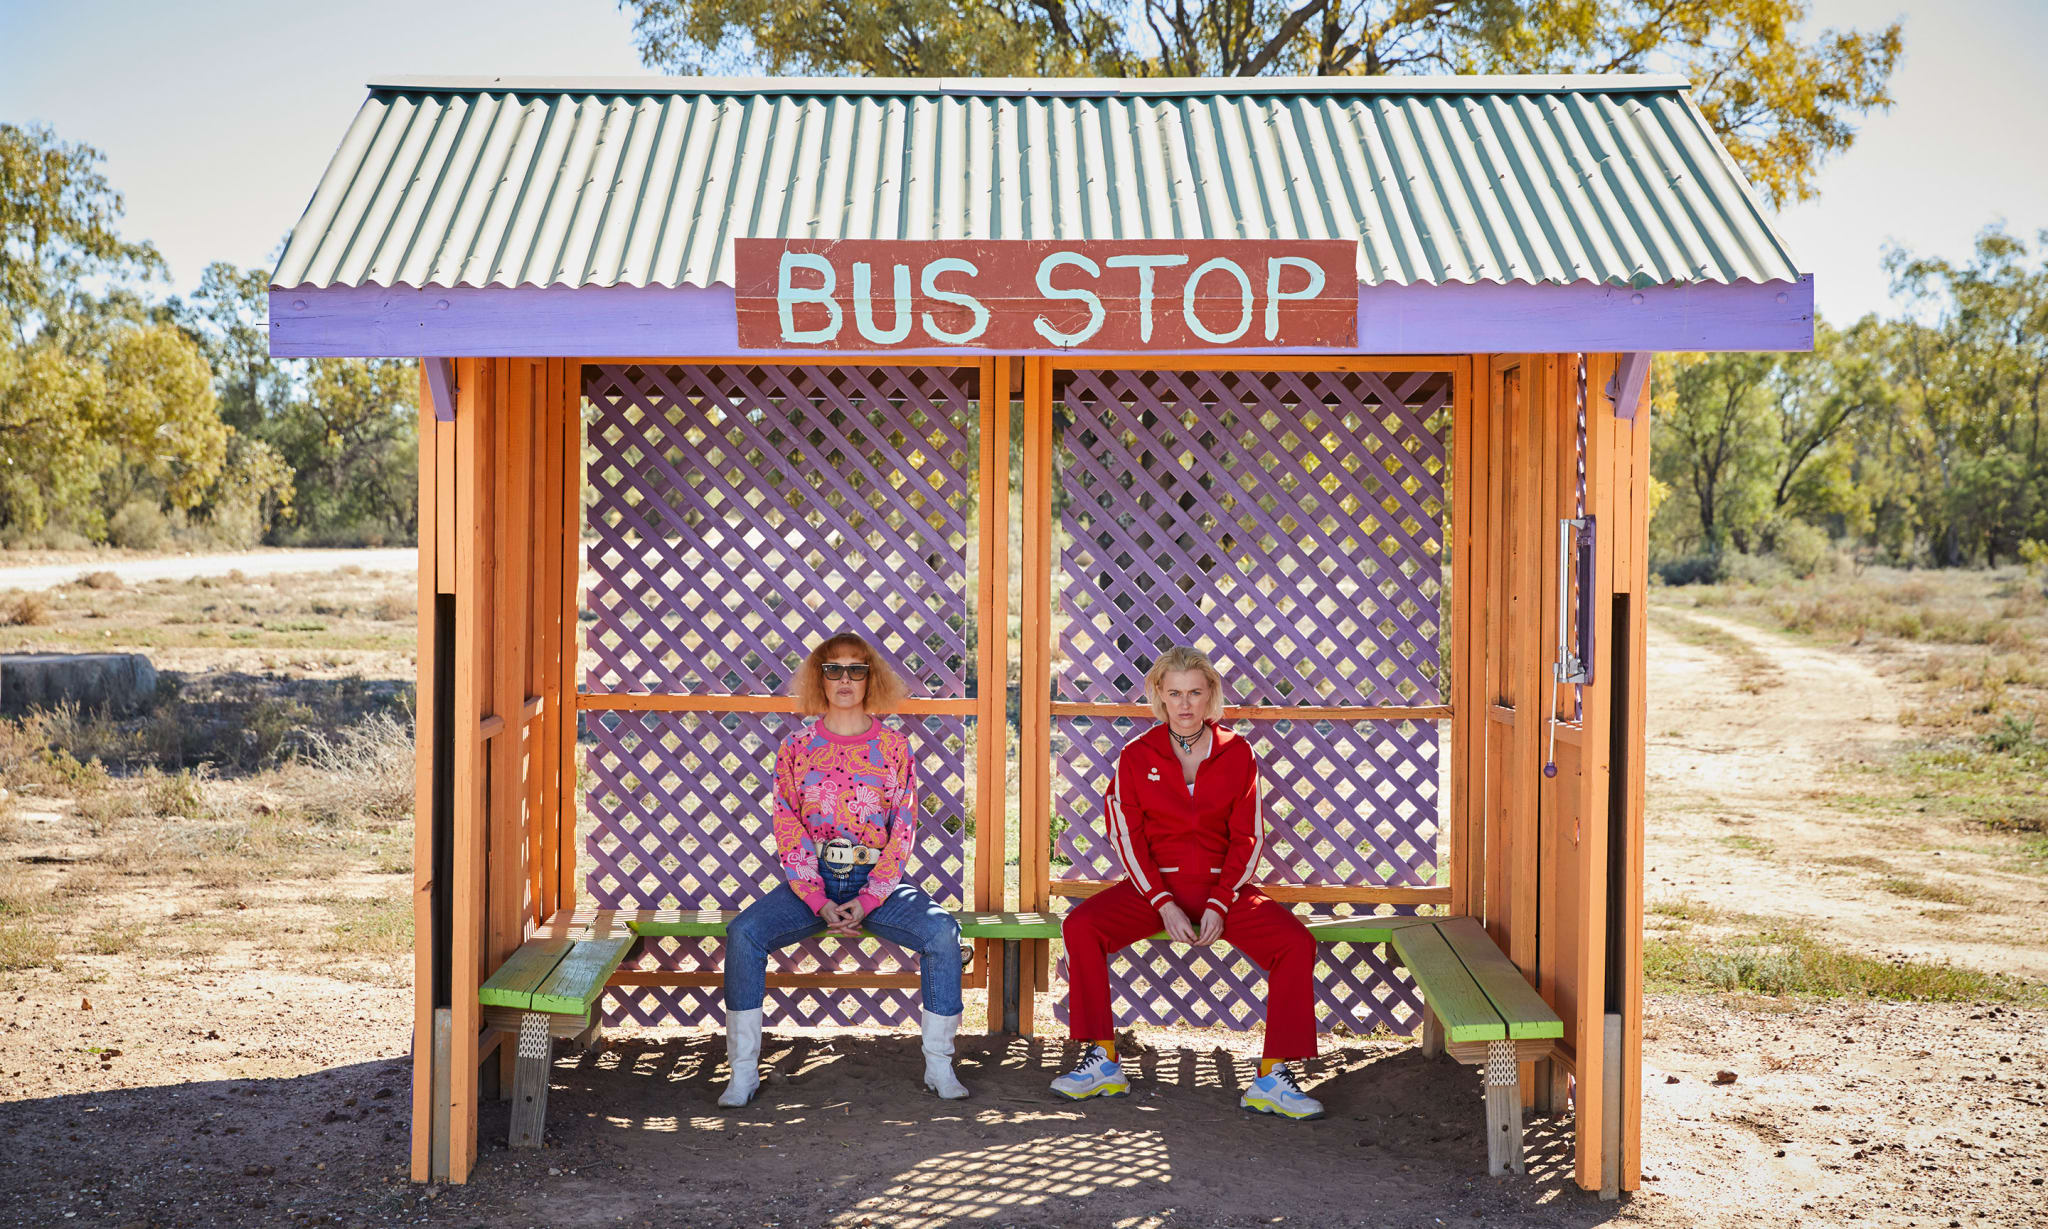 Two women sat in a colourful bus stop in the desert.